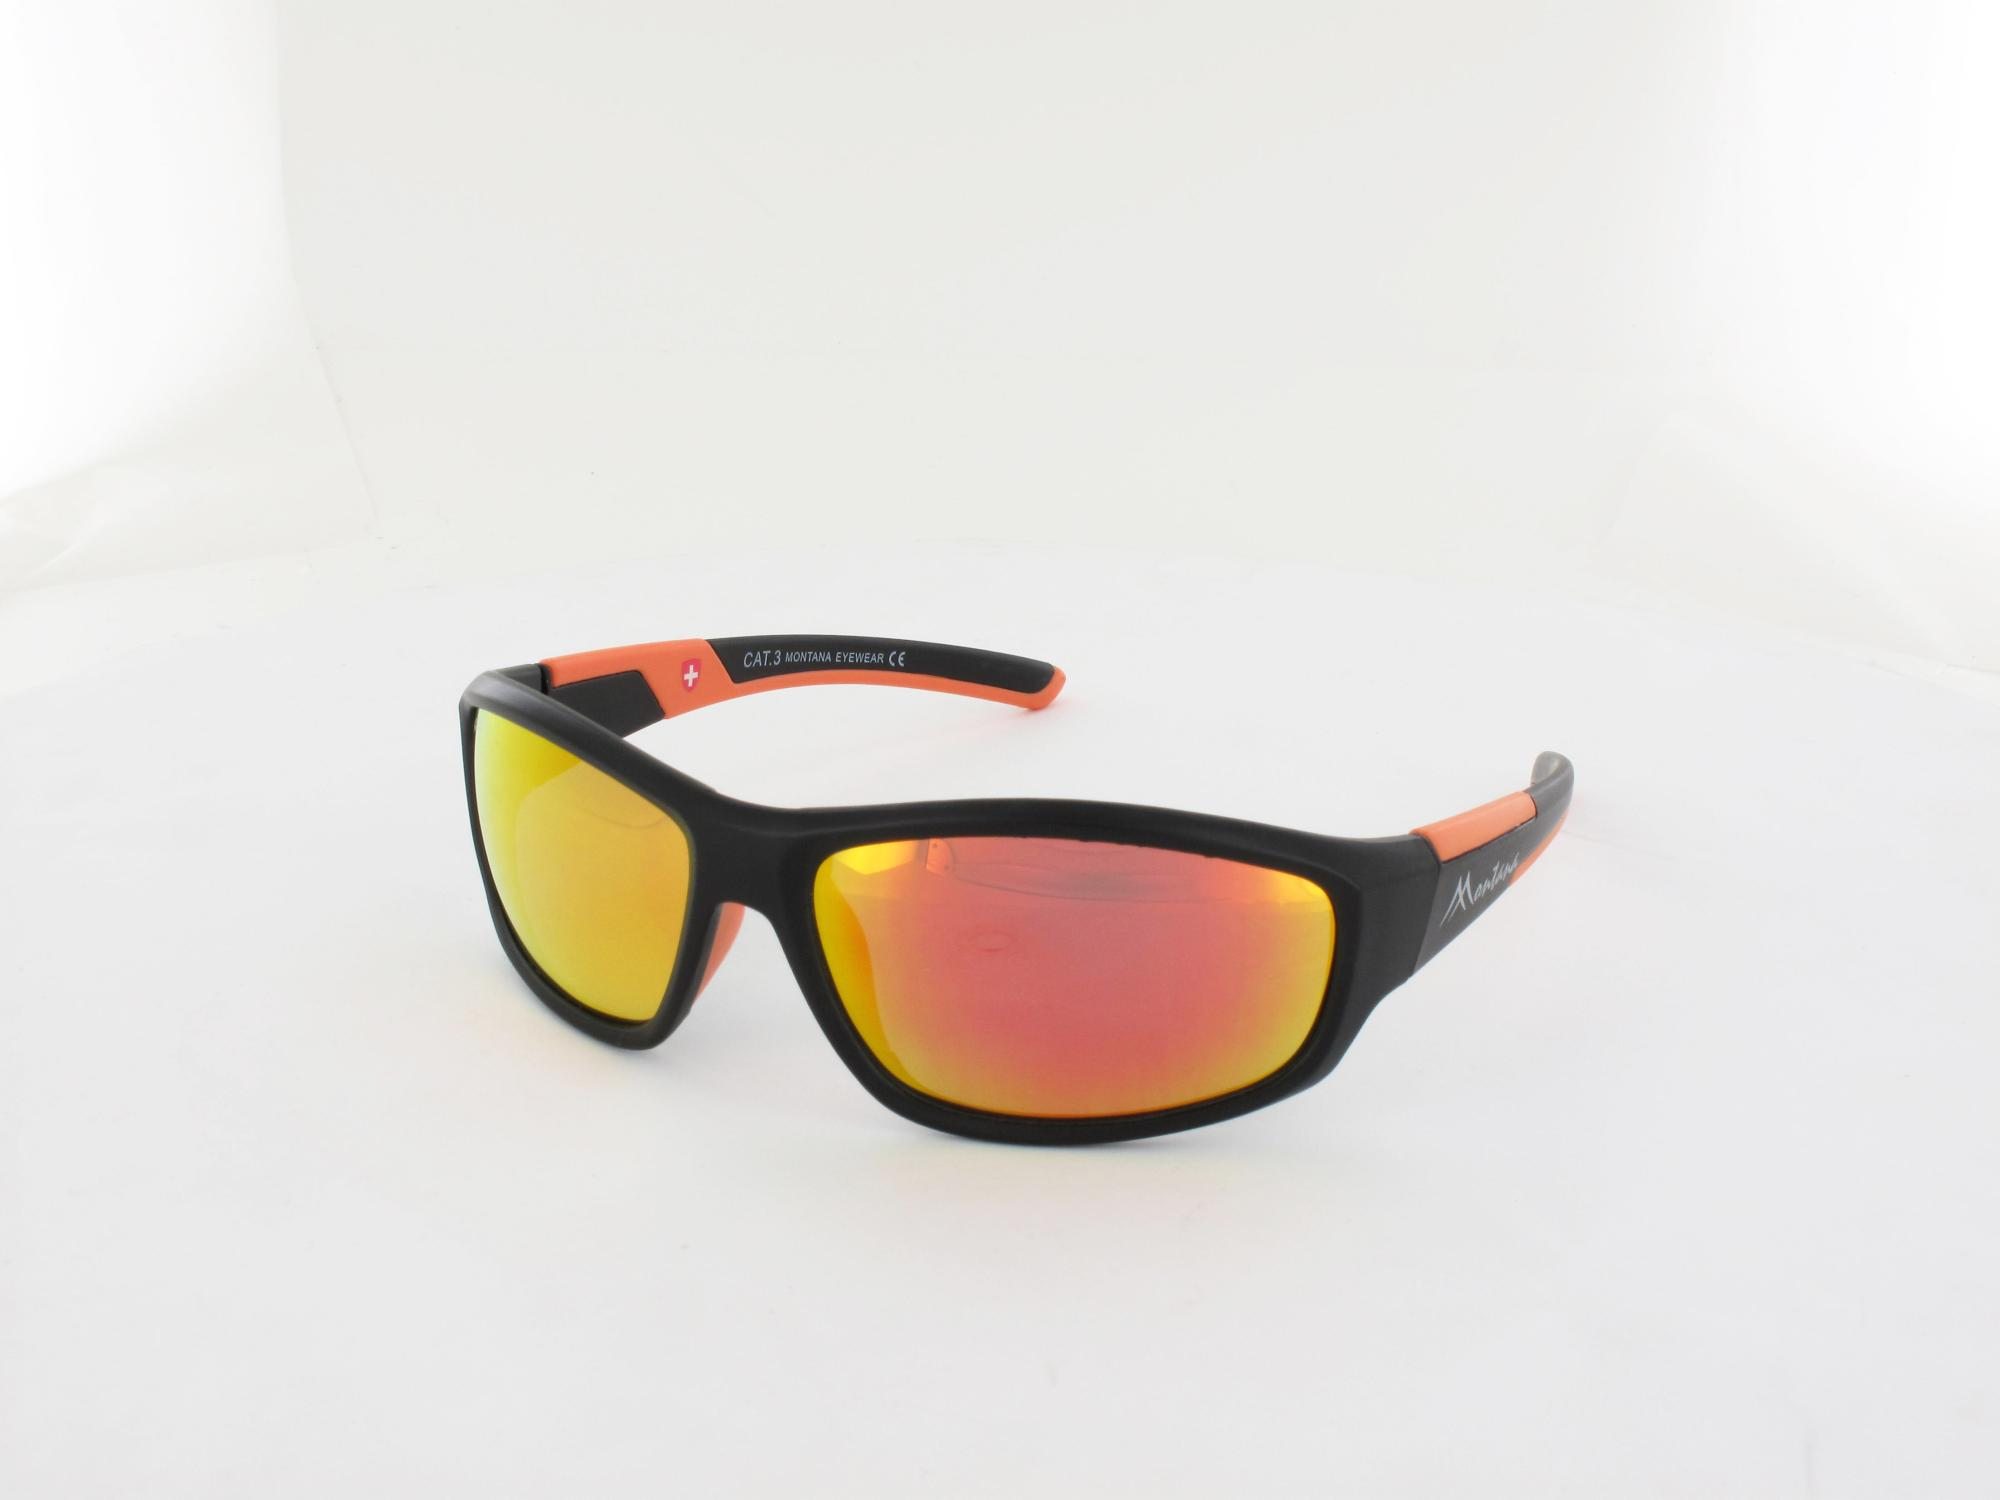 Brilando | SP311 A 62 | black orange  / red mirror polarized